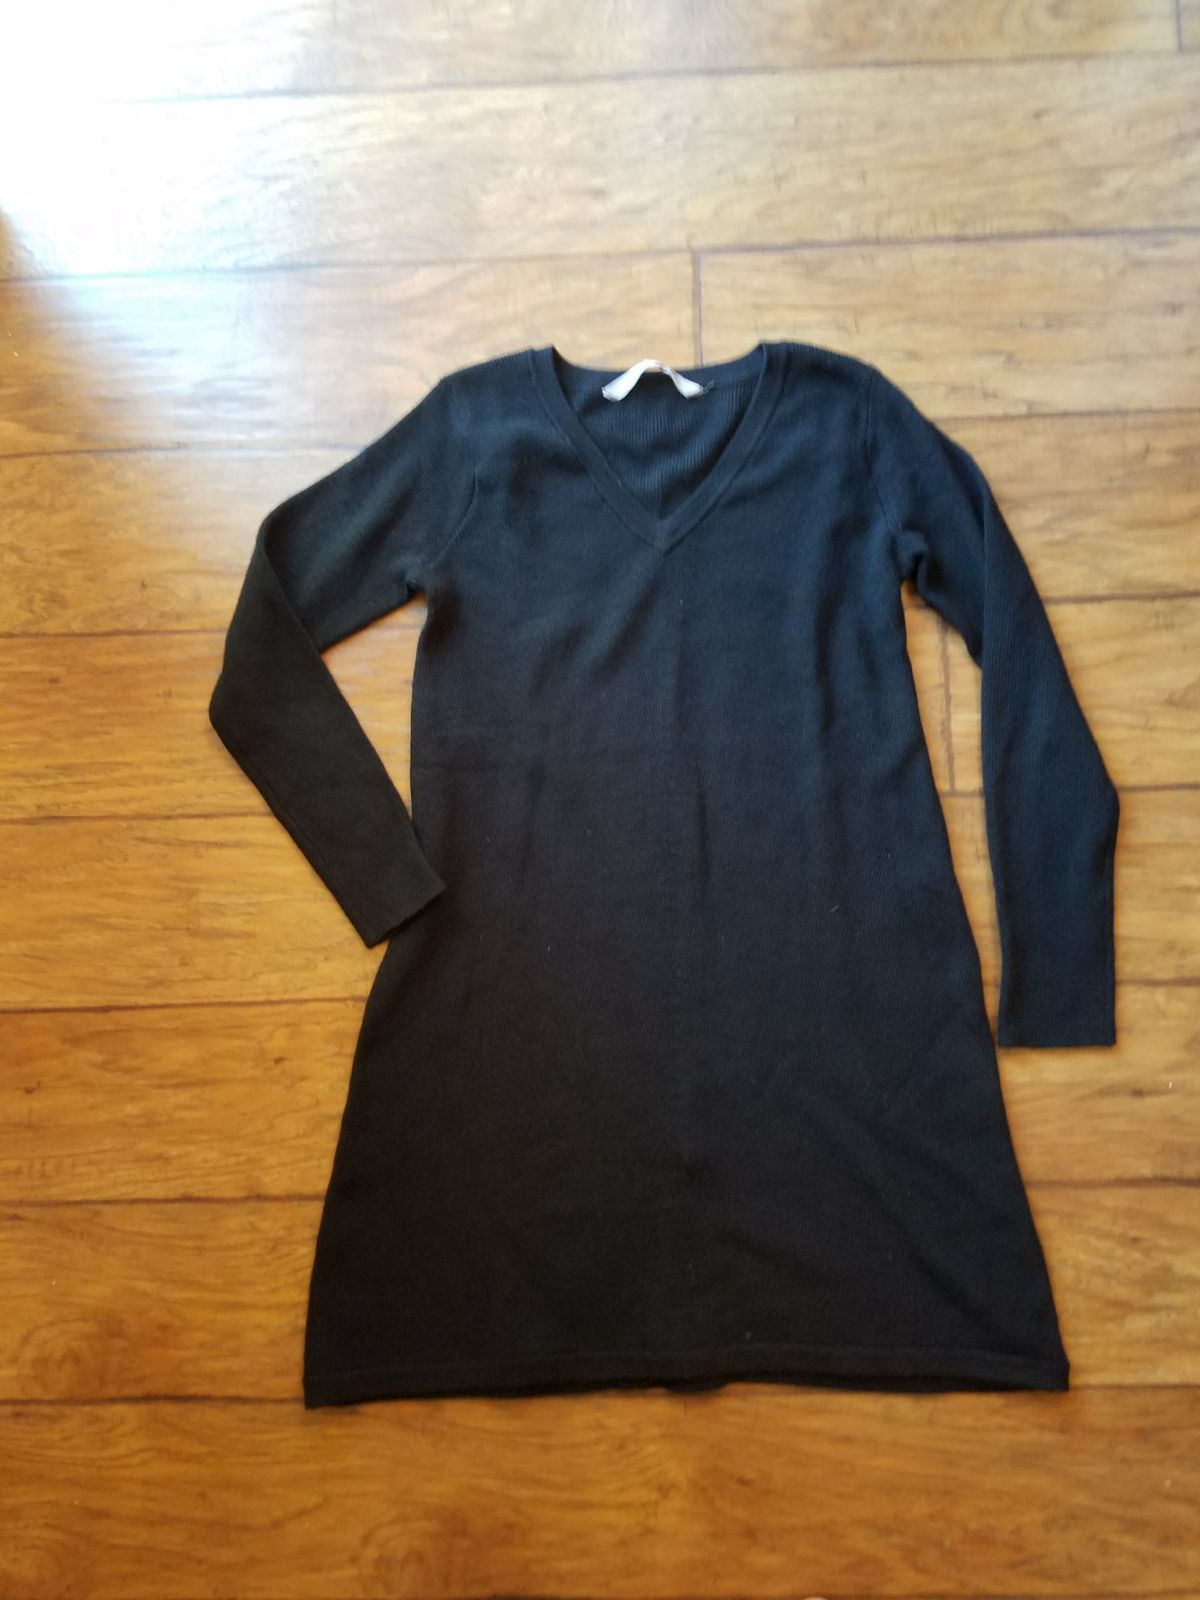 Athleta black tunic sweater dress small - Mercari: BUY & SELL ...